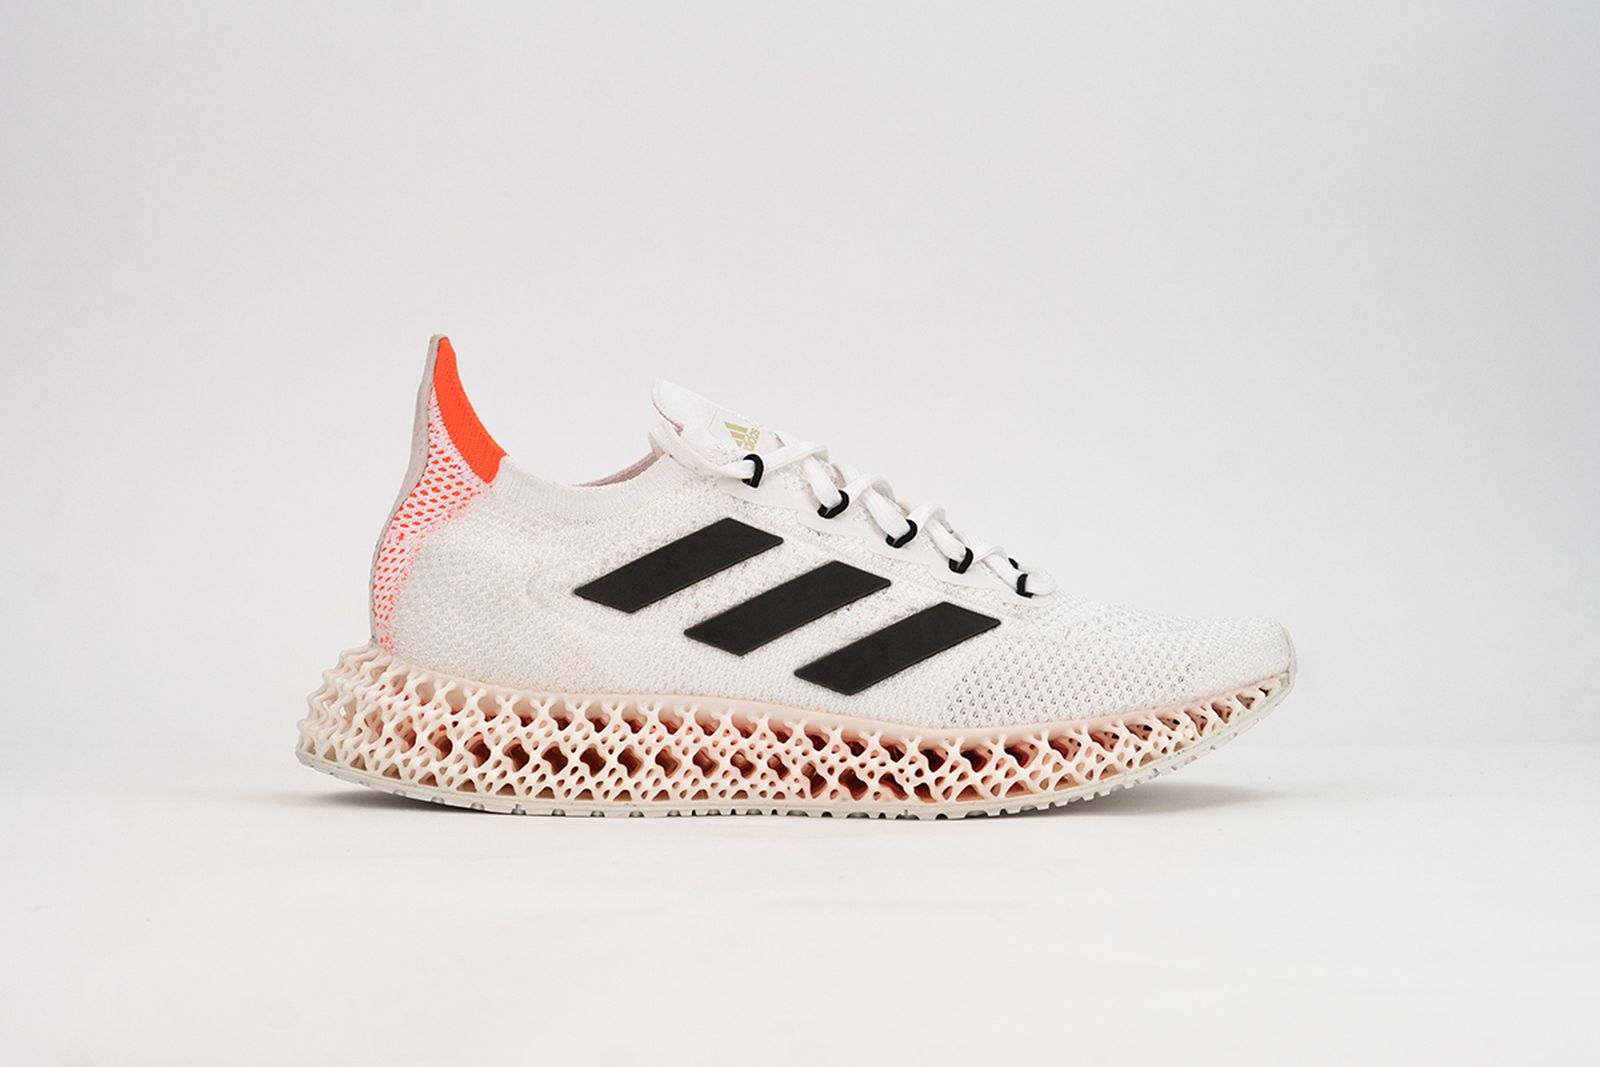 adidas-4dfwd-tokyo-release-date-price-06